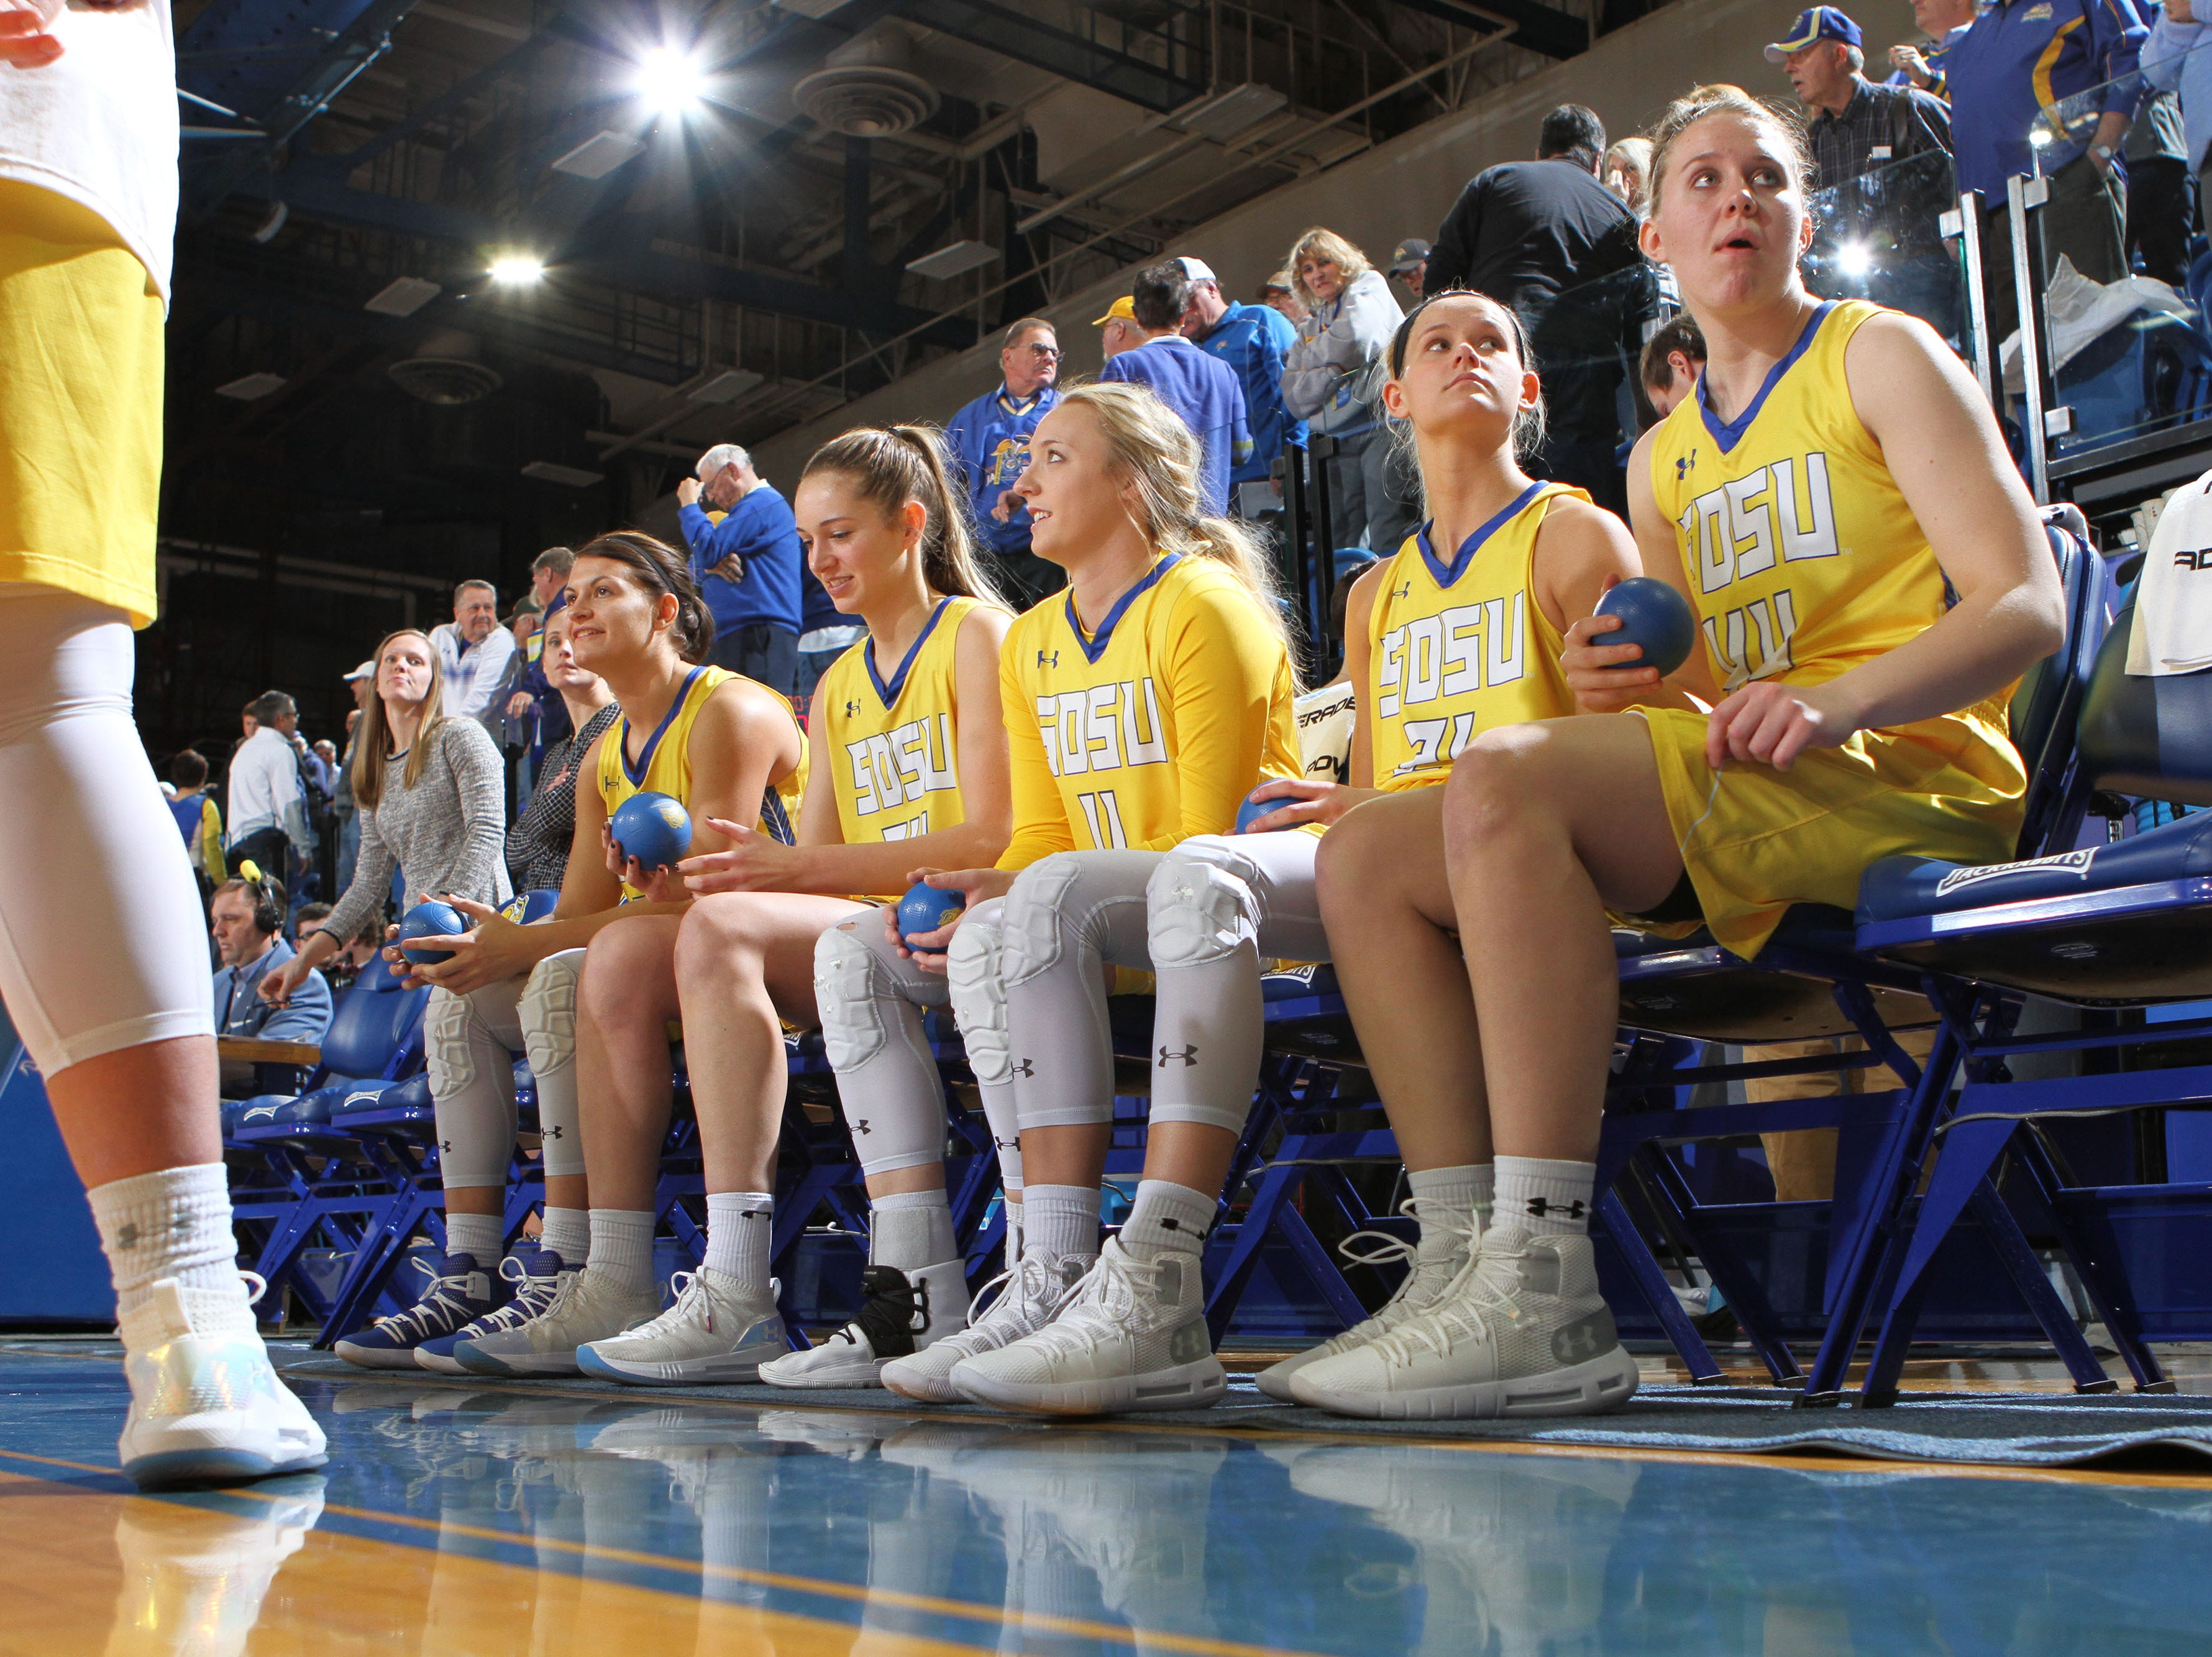 South Dakota State's starting five consisting of (from left) Macy Miller, Tagyn Larson, Madison Guebert, Tylee Irwin, and Myah Selland get ready for introductions prior to the matchup against Oral Roberts Saturday afternoon at Frost Arena in Brookings.